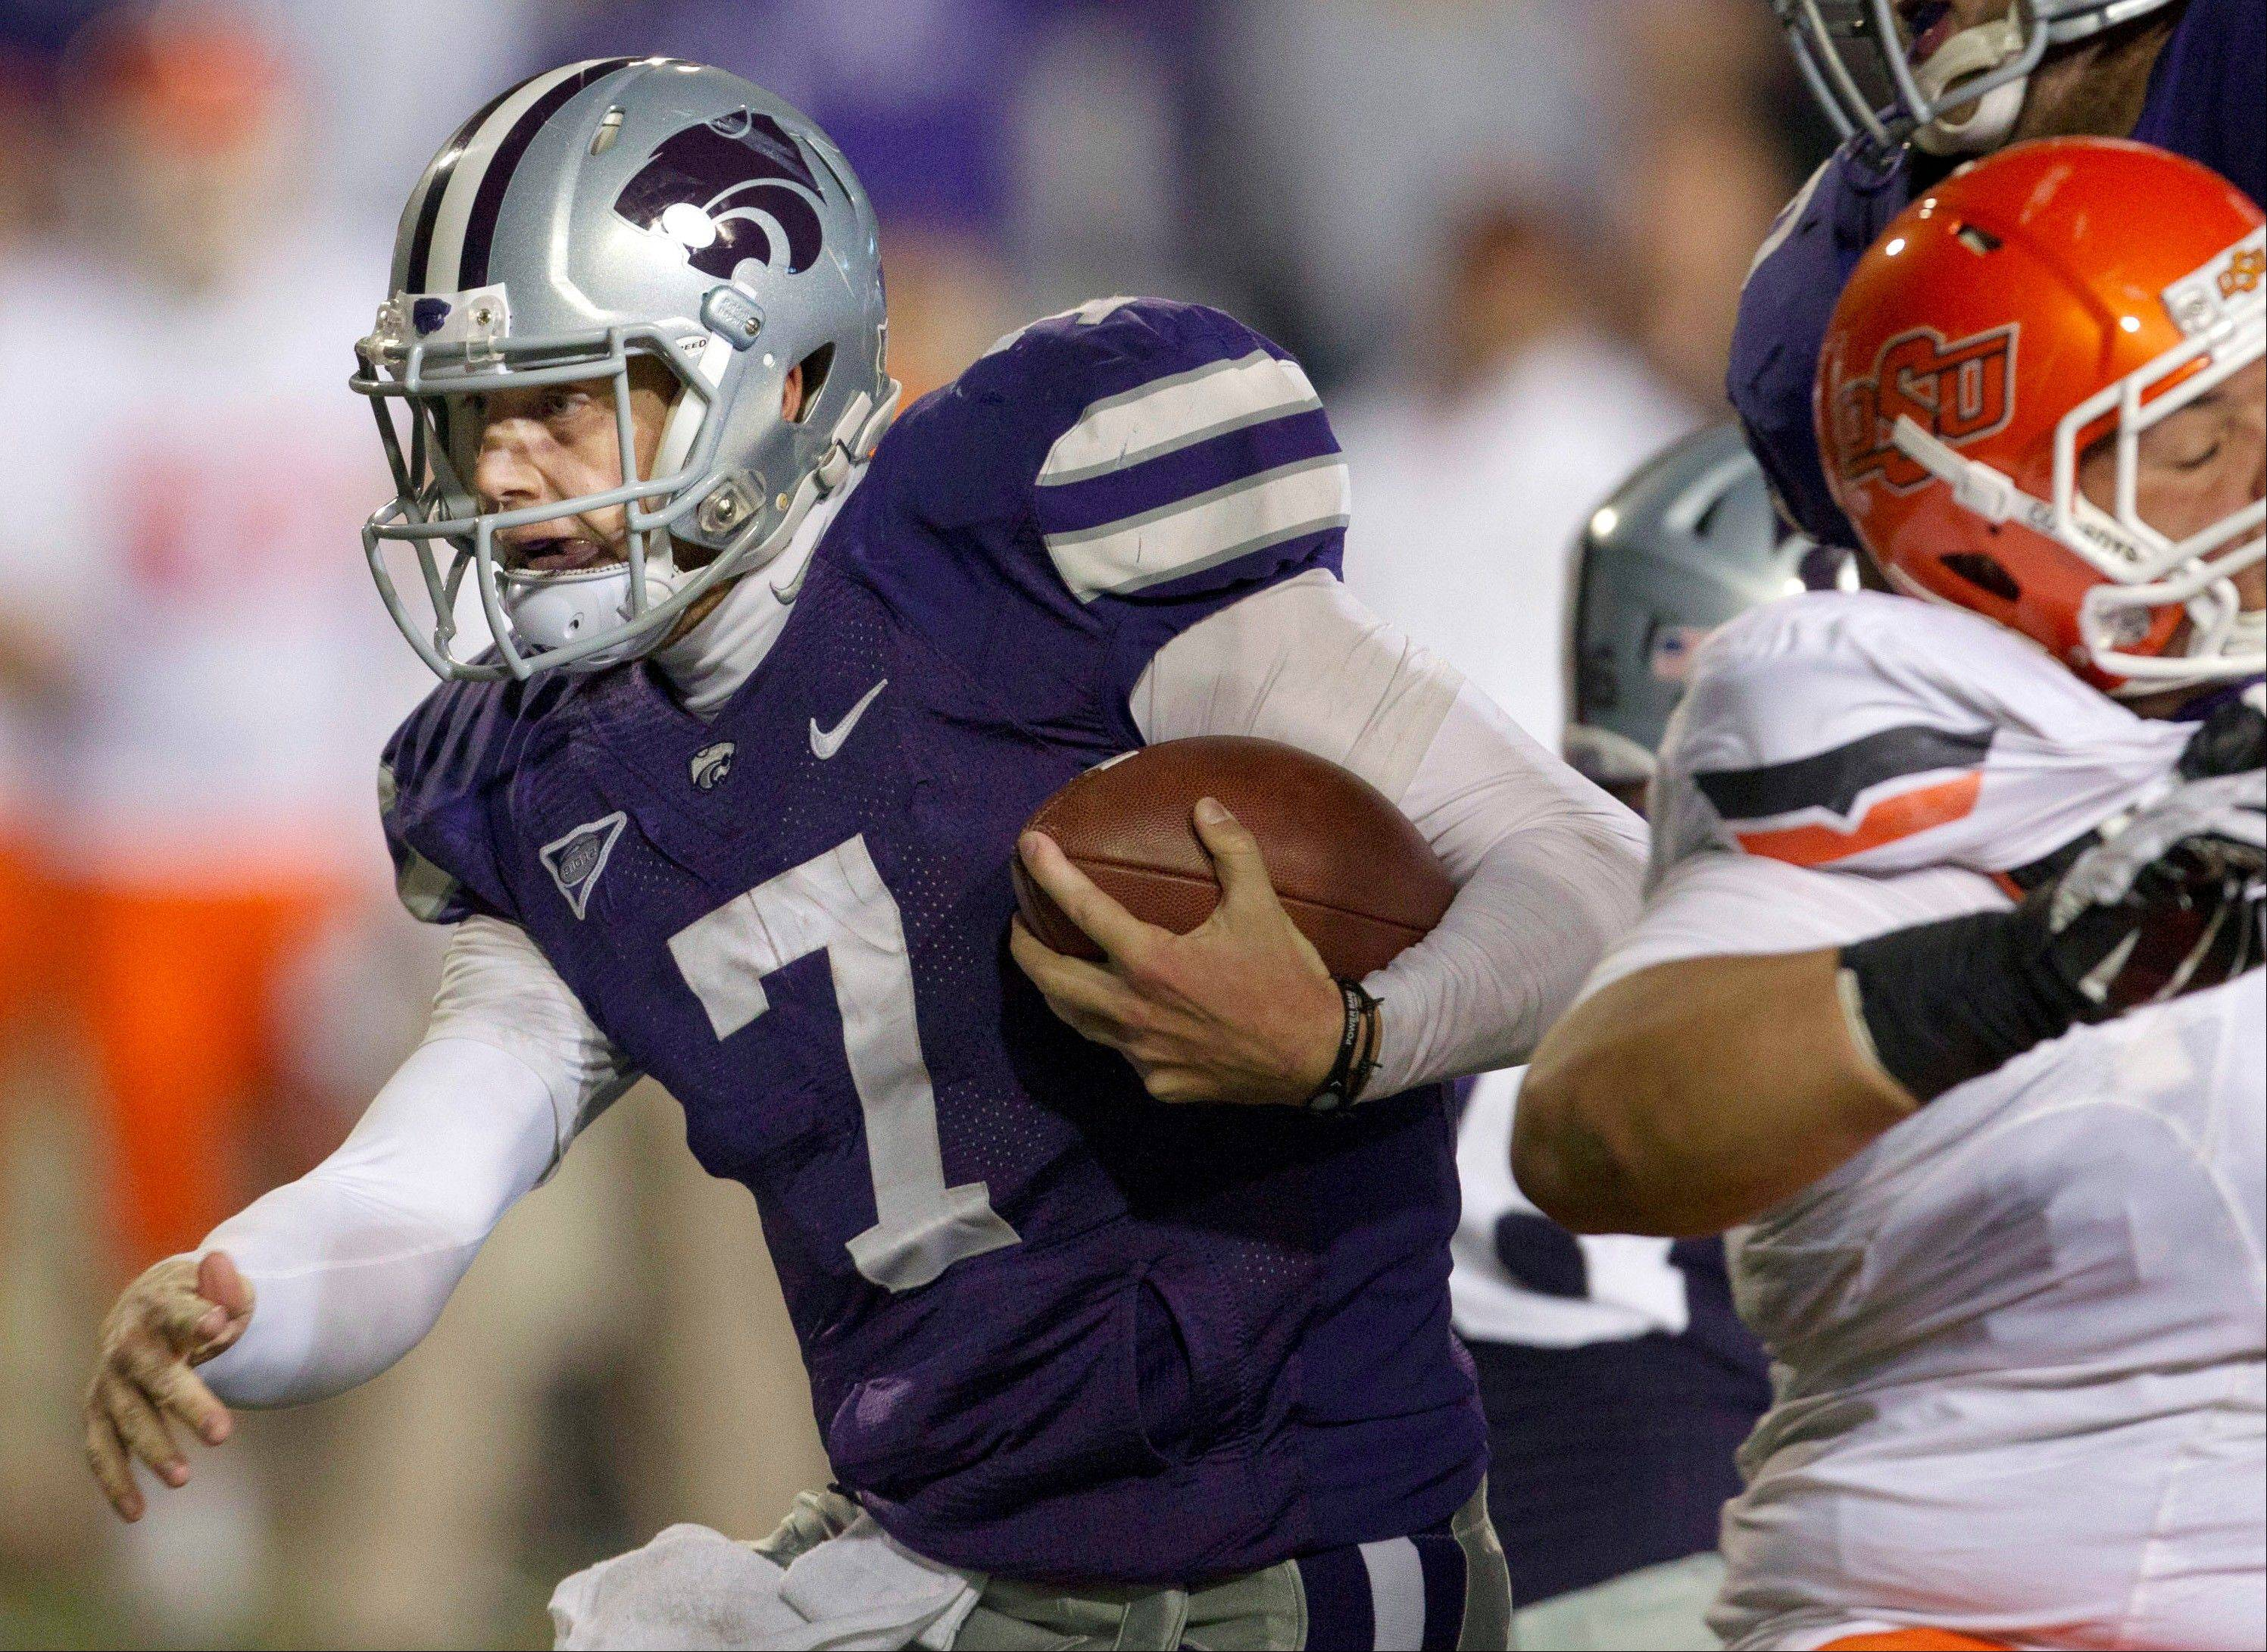 Kansas State quarterback Collin Klein runs for a first down against Oklahoma State. Once the front-runner for the award, Klein will face stiff competition from Texas A&M quarterback Johnny Manziel and Notre Dame linebacker Manti Te'o when the Heisman is given out Saturday night in New York City.